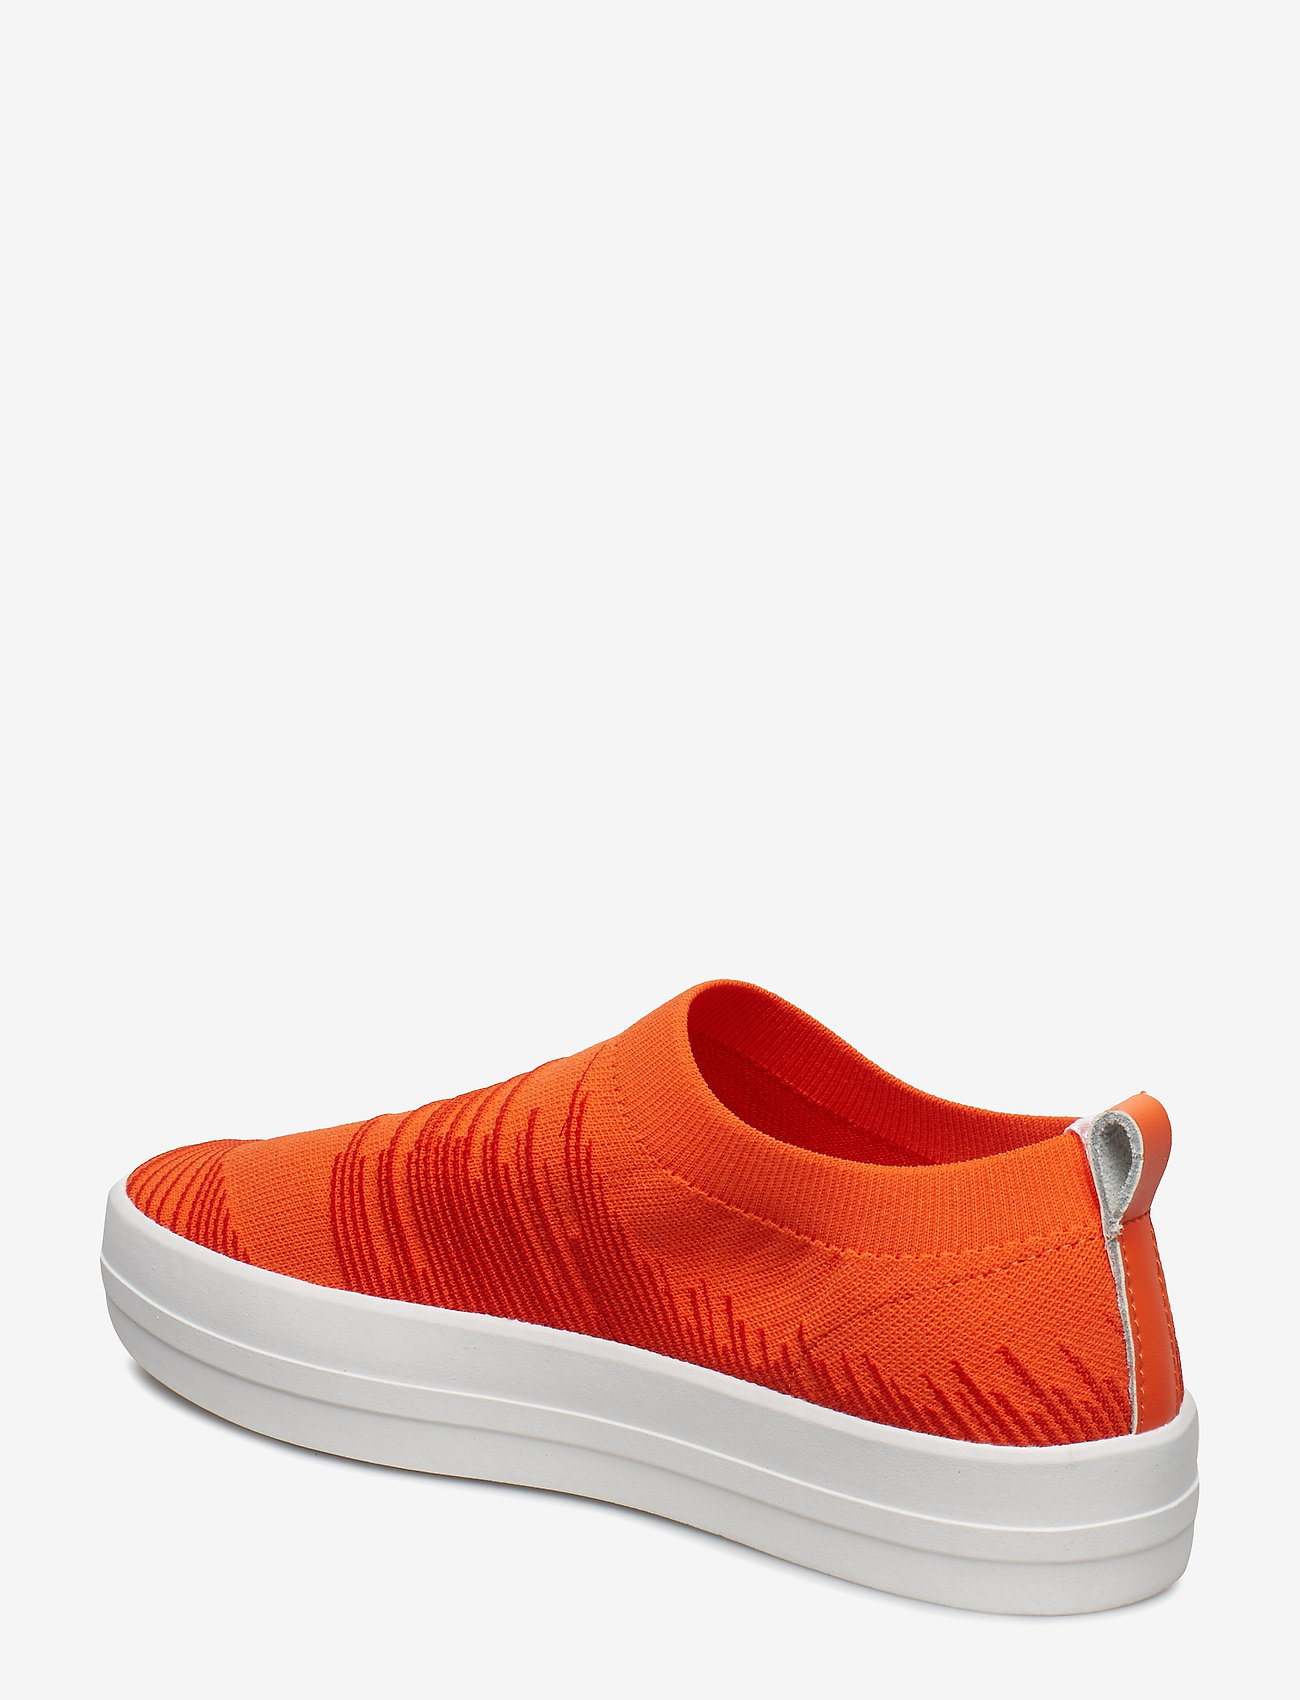 Neela Knit (Coral Red) - Shoe The Bear